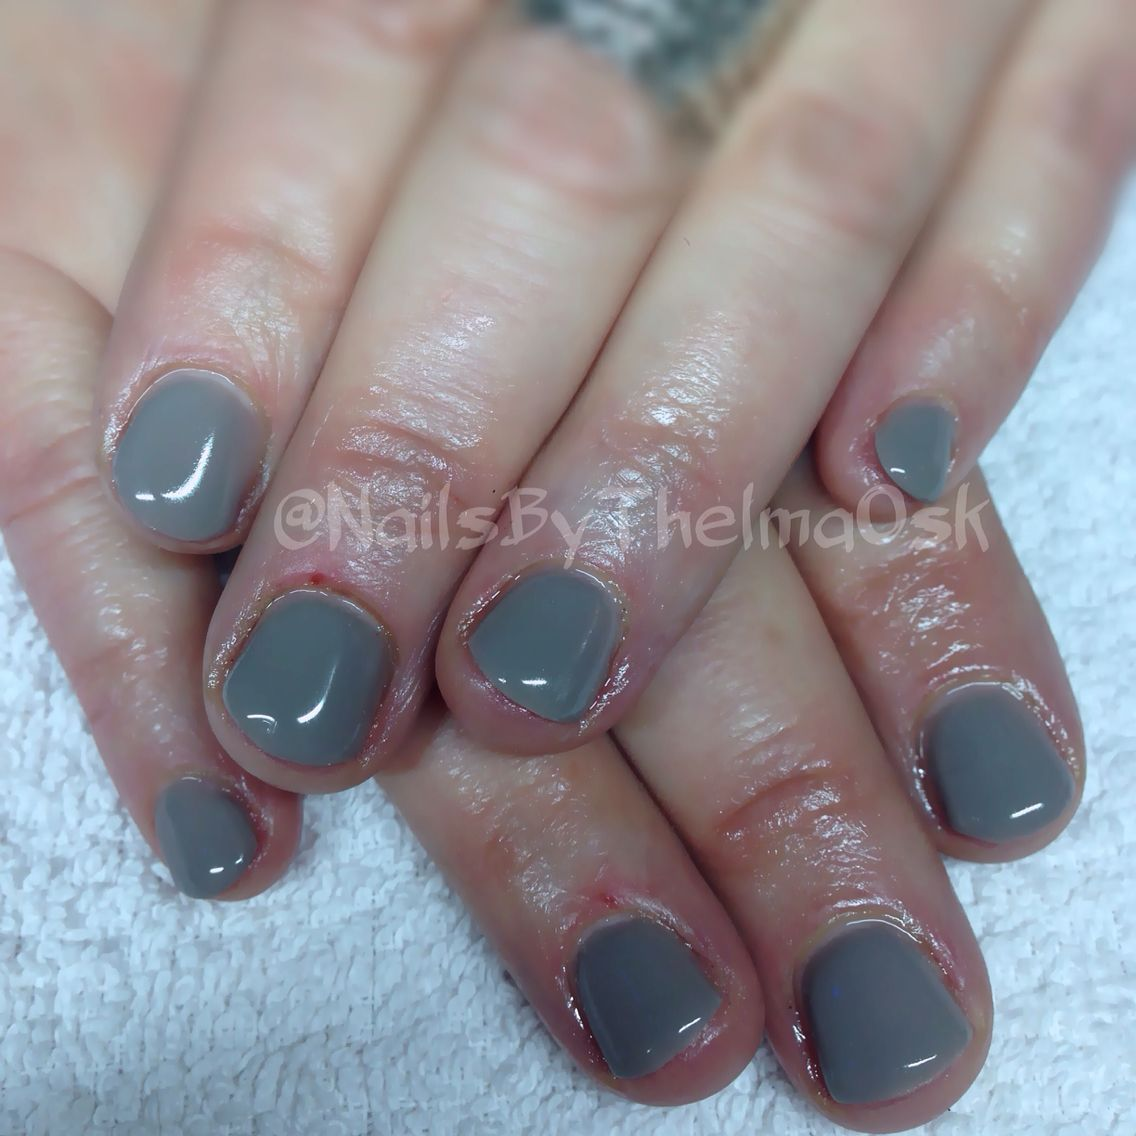 Putting grey hardgel manicure on a biter! Male them nails naturally ...